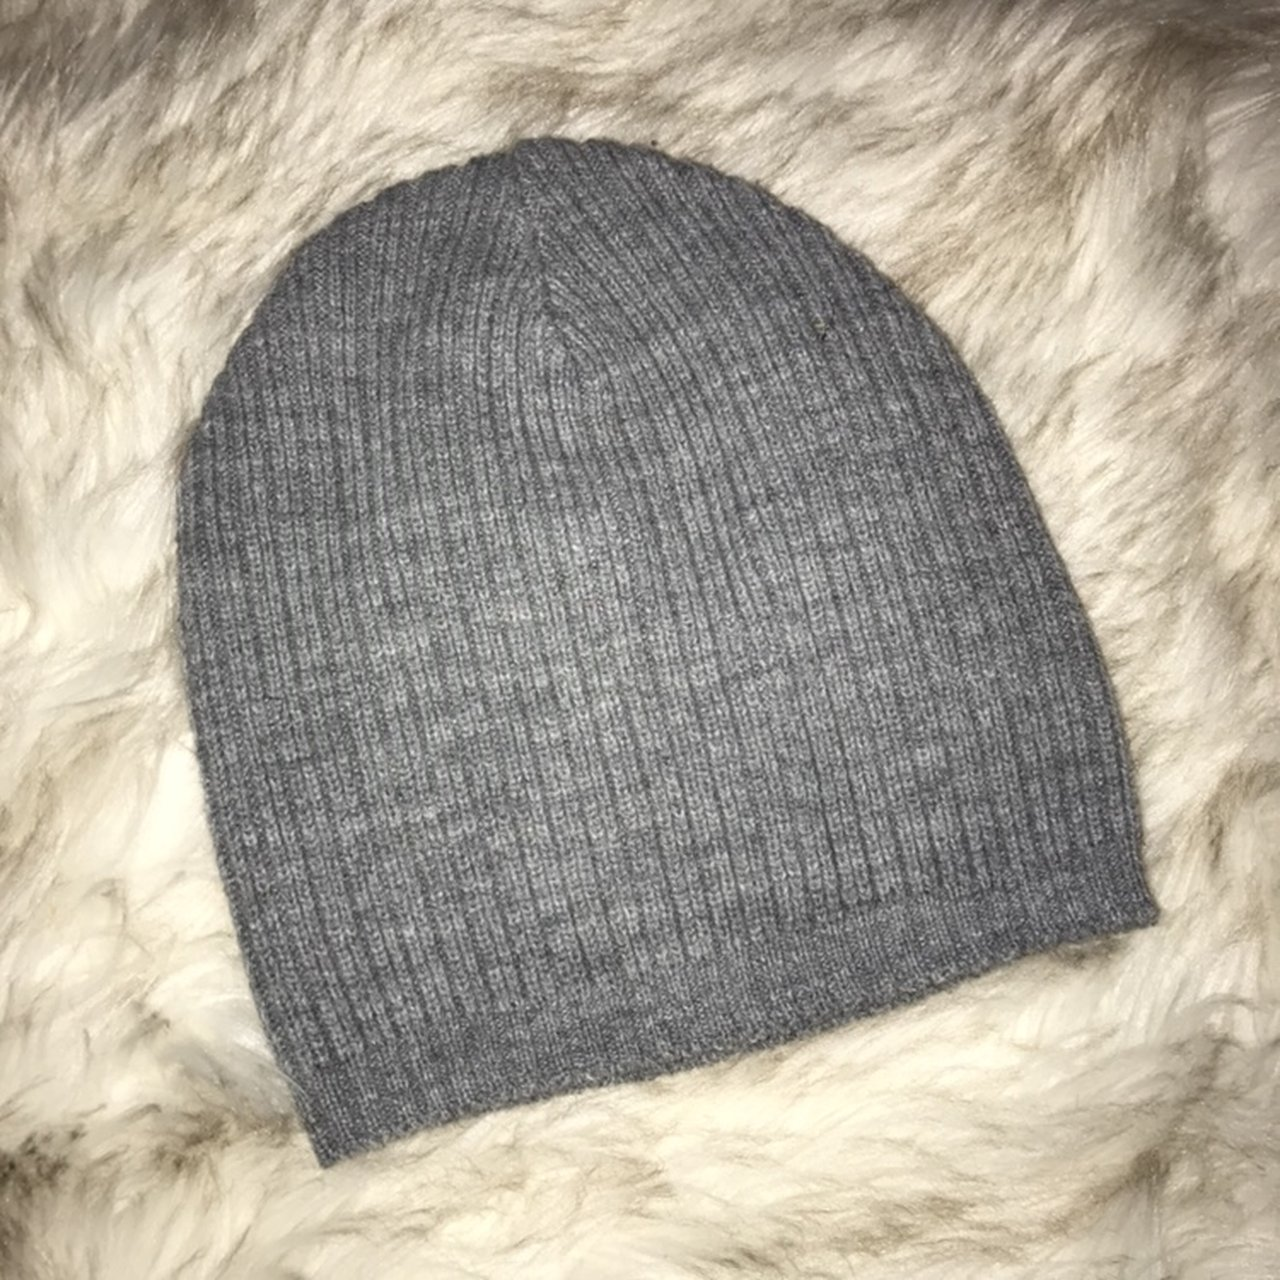 Plain gray beanie Worn once Perfect condition - Depop 56d891bd8c1